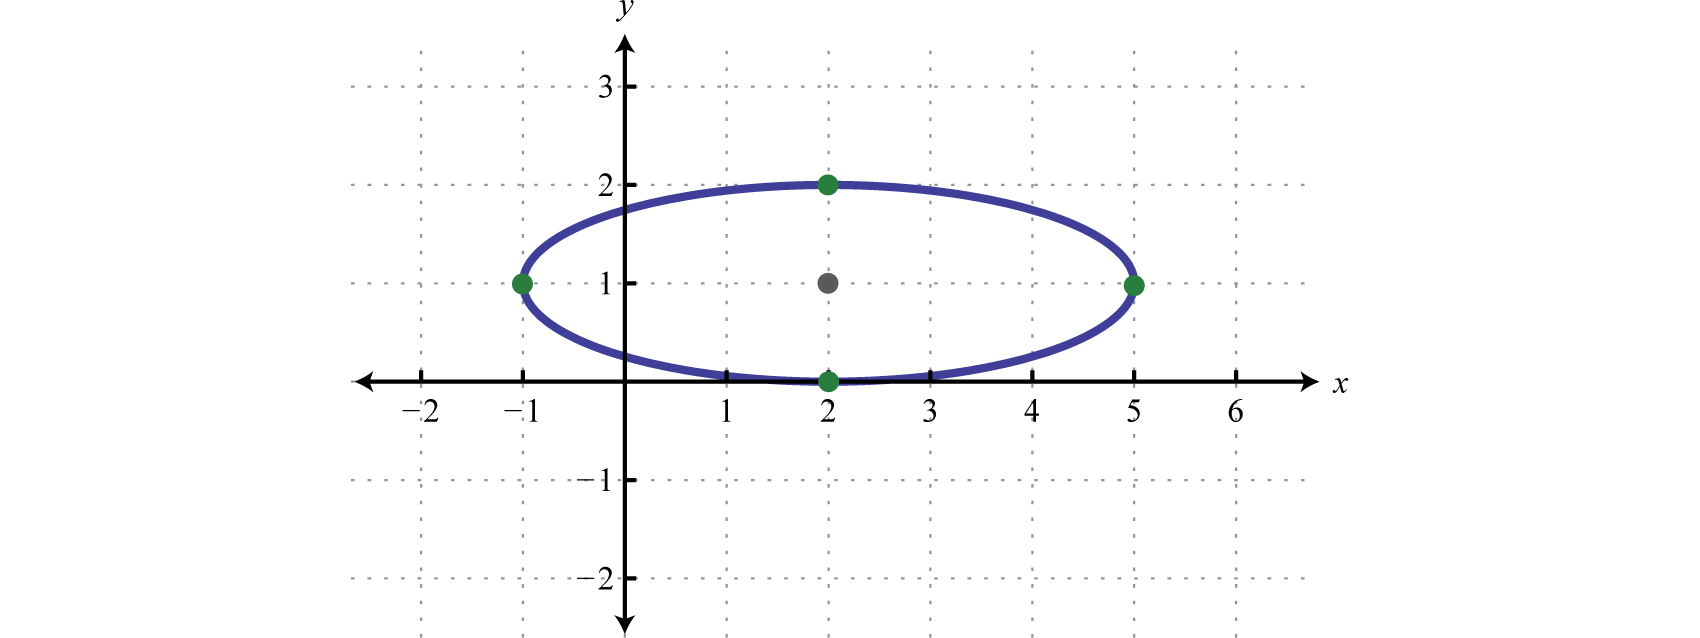 Therefore, The Center Of The Ellipse Is ( 2 , 1 ) , A = 9 = 3 , And B = 1 =  1  The Graph Follows: